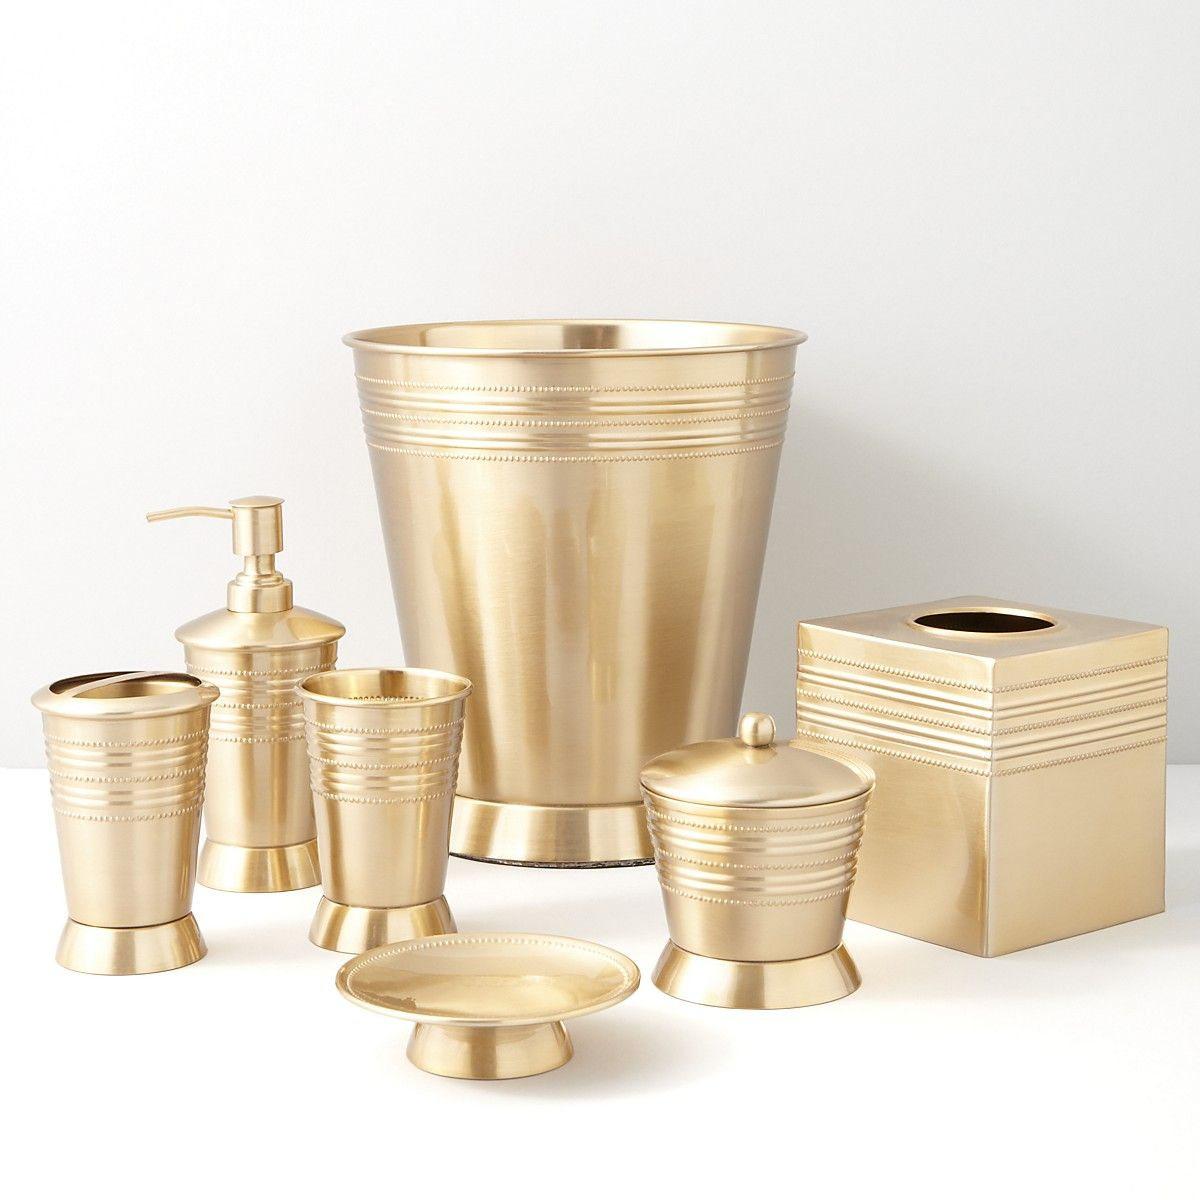 New metallic bead satin brass by paradigm trends bath for Bathroom accents